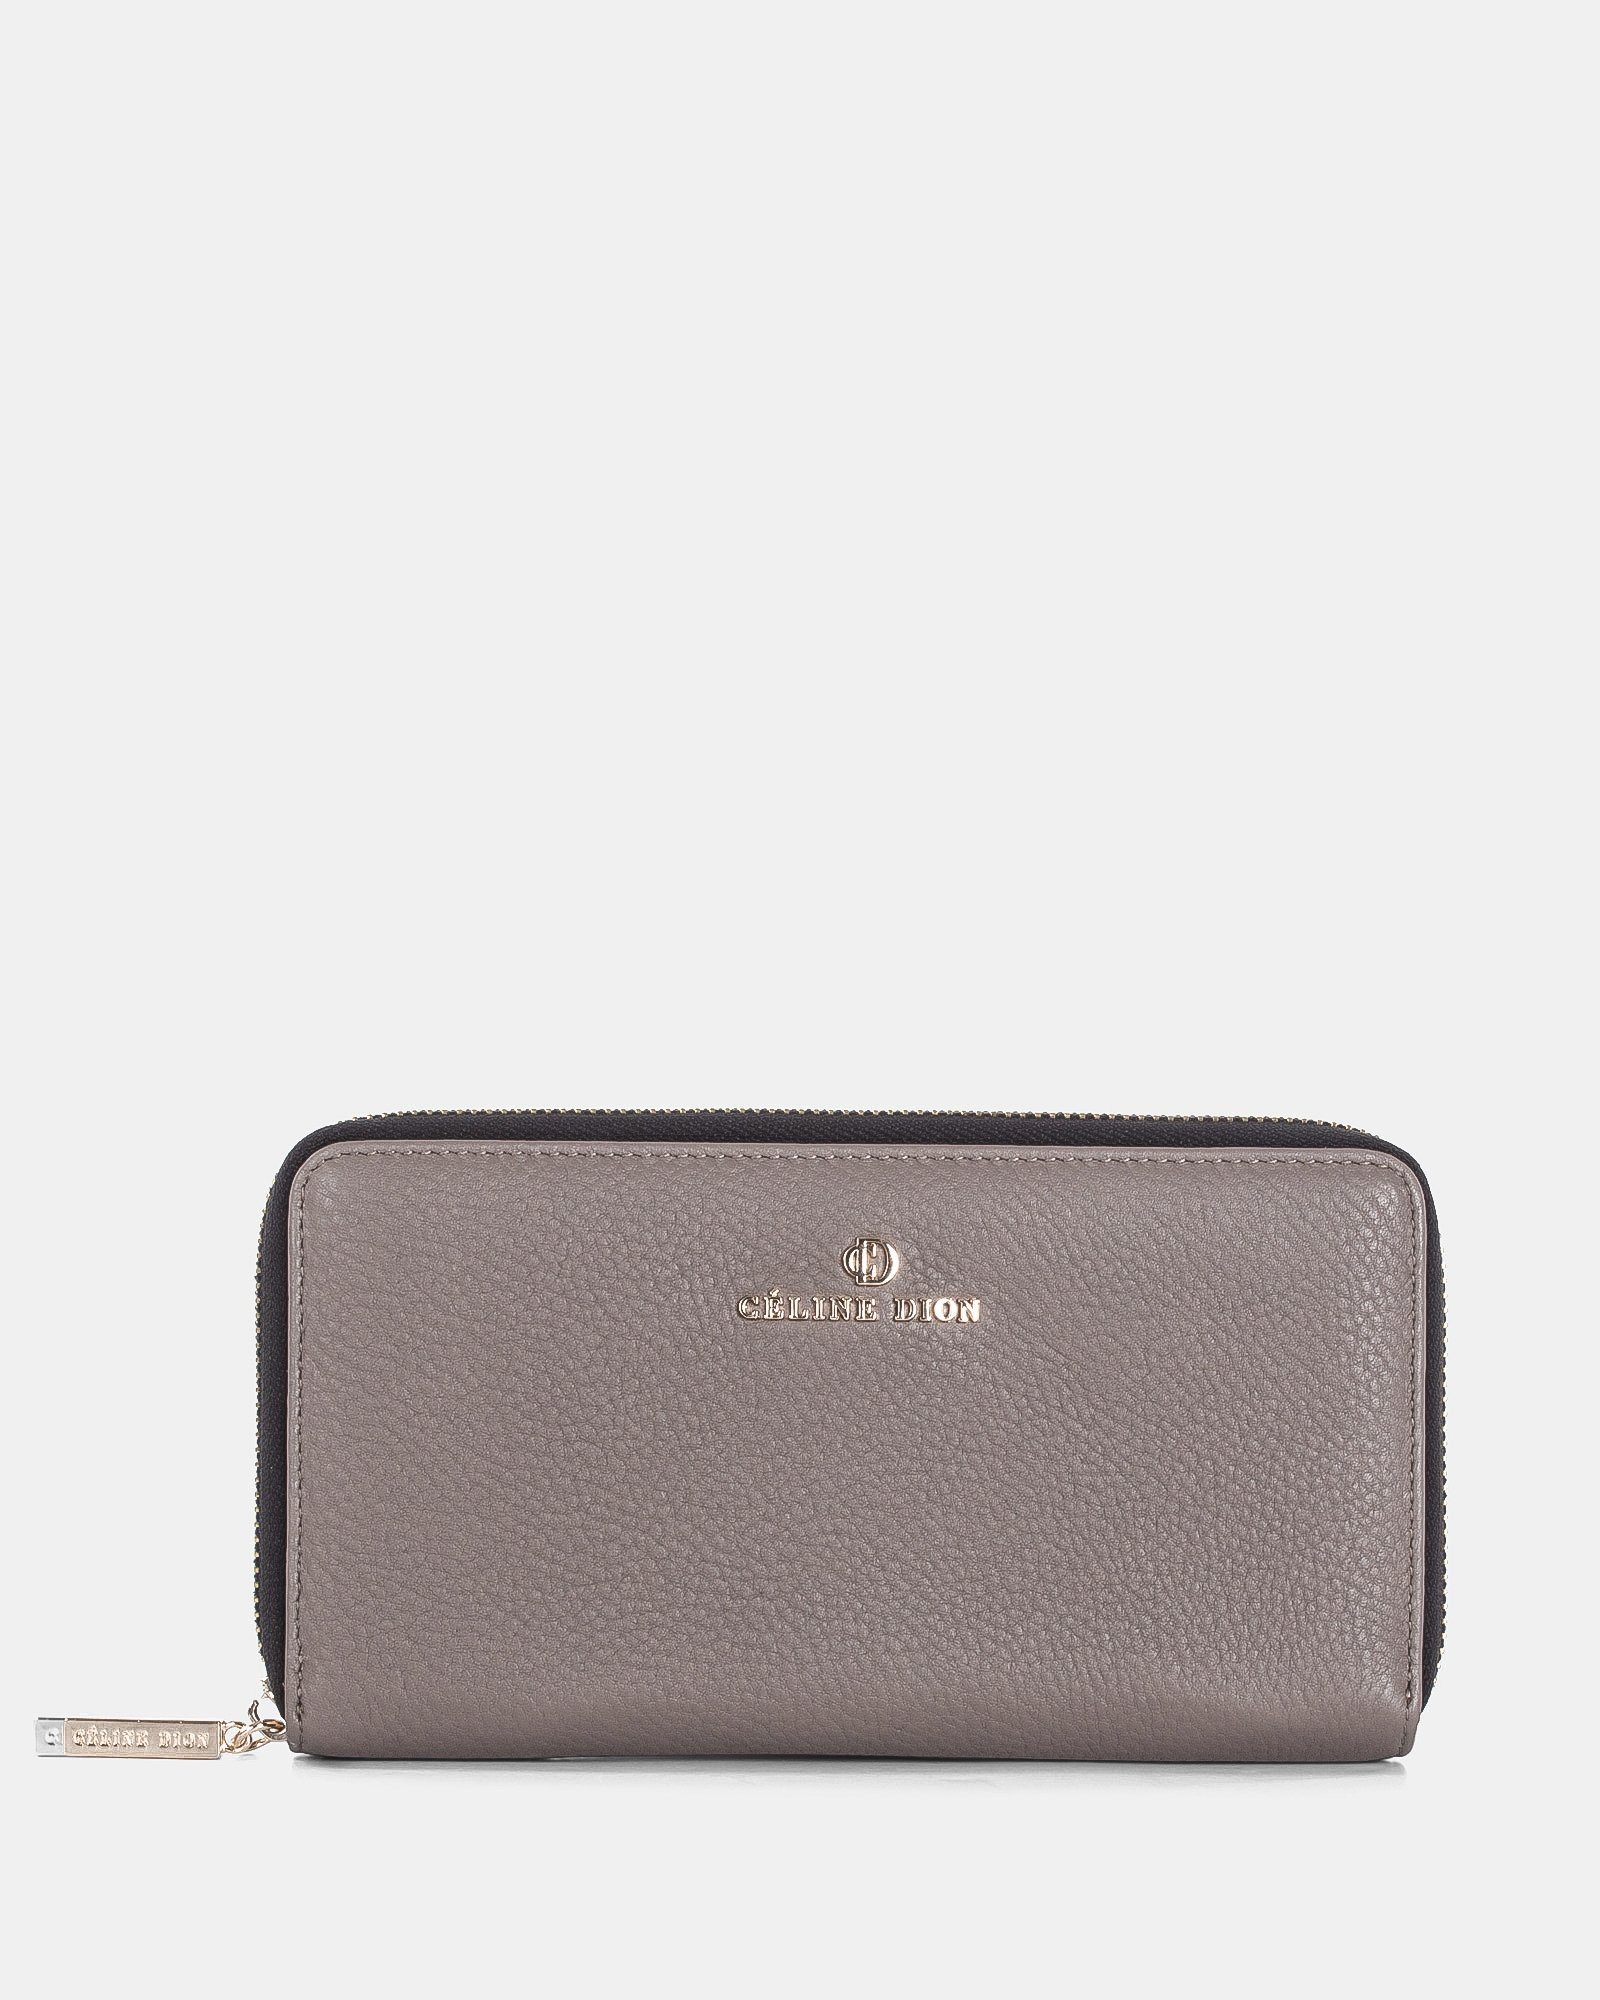 ADAGIO - LEATHER WALLET with zip around - TAUPE COMBO - Céline Dion - Zoom